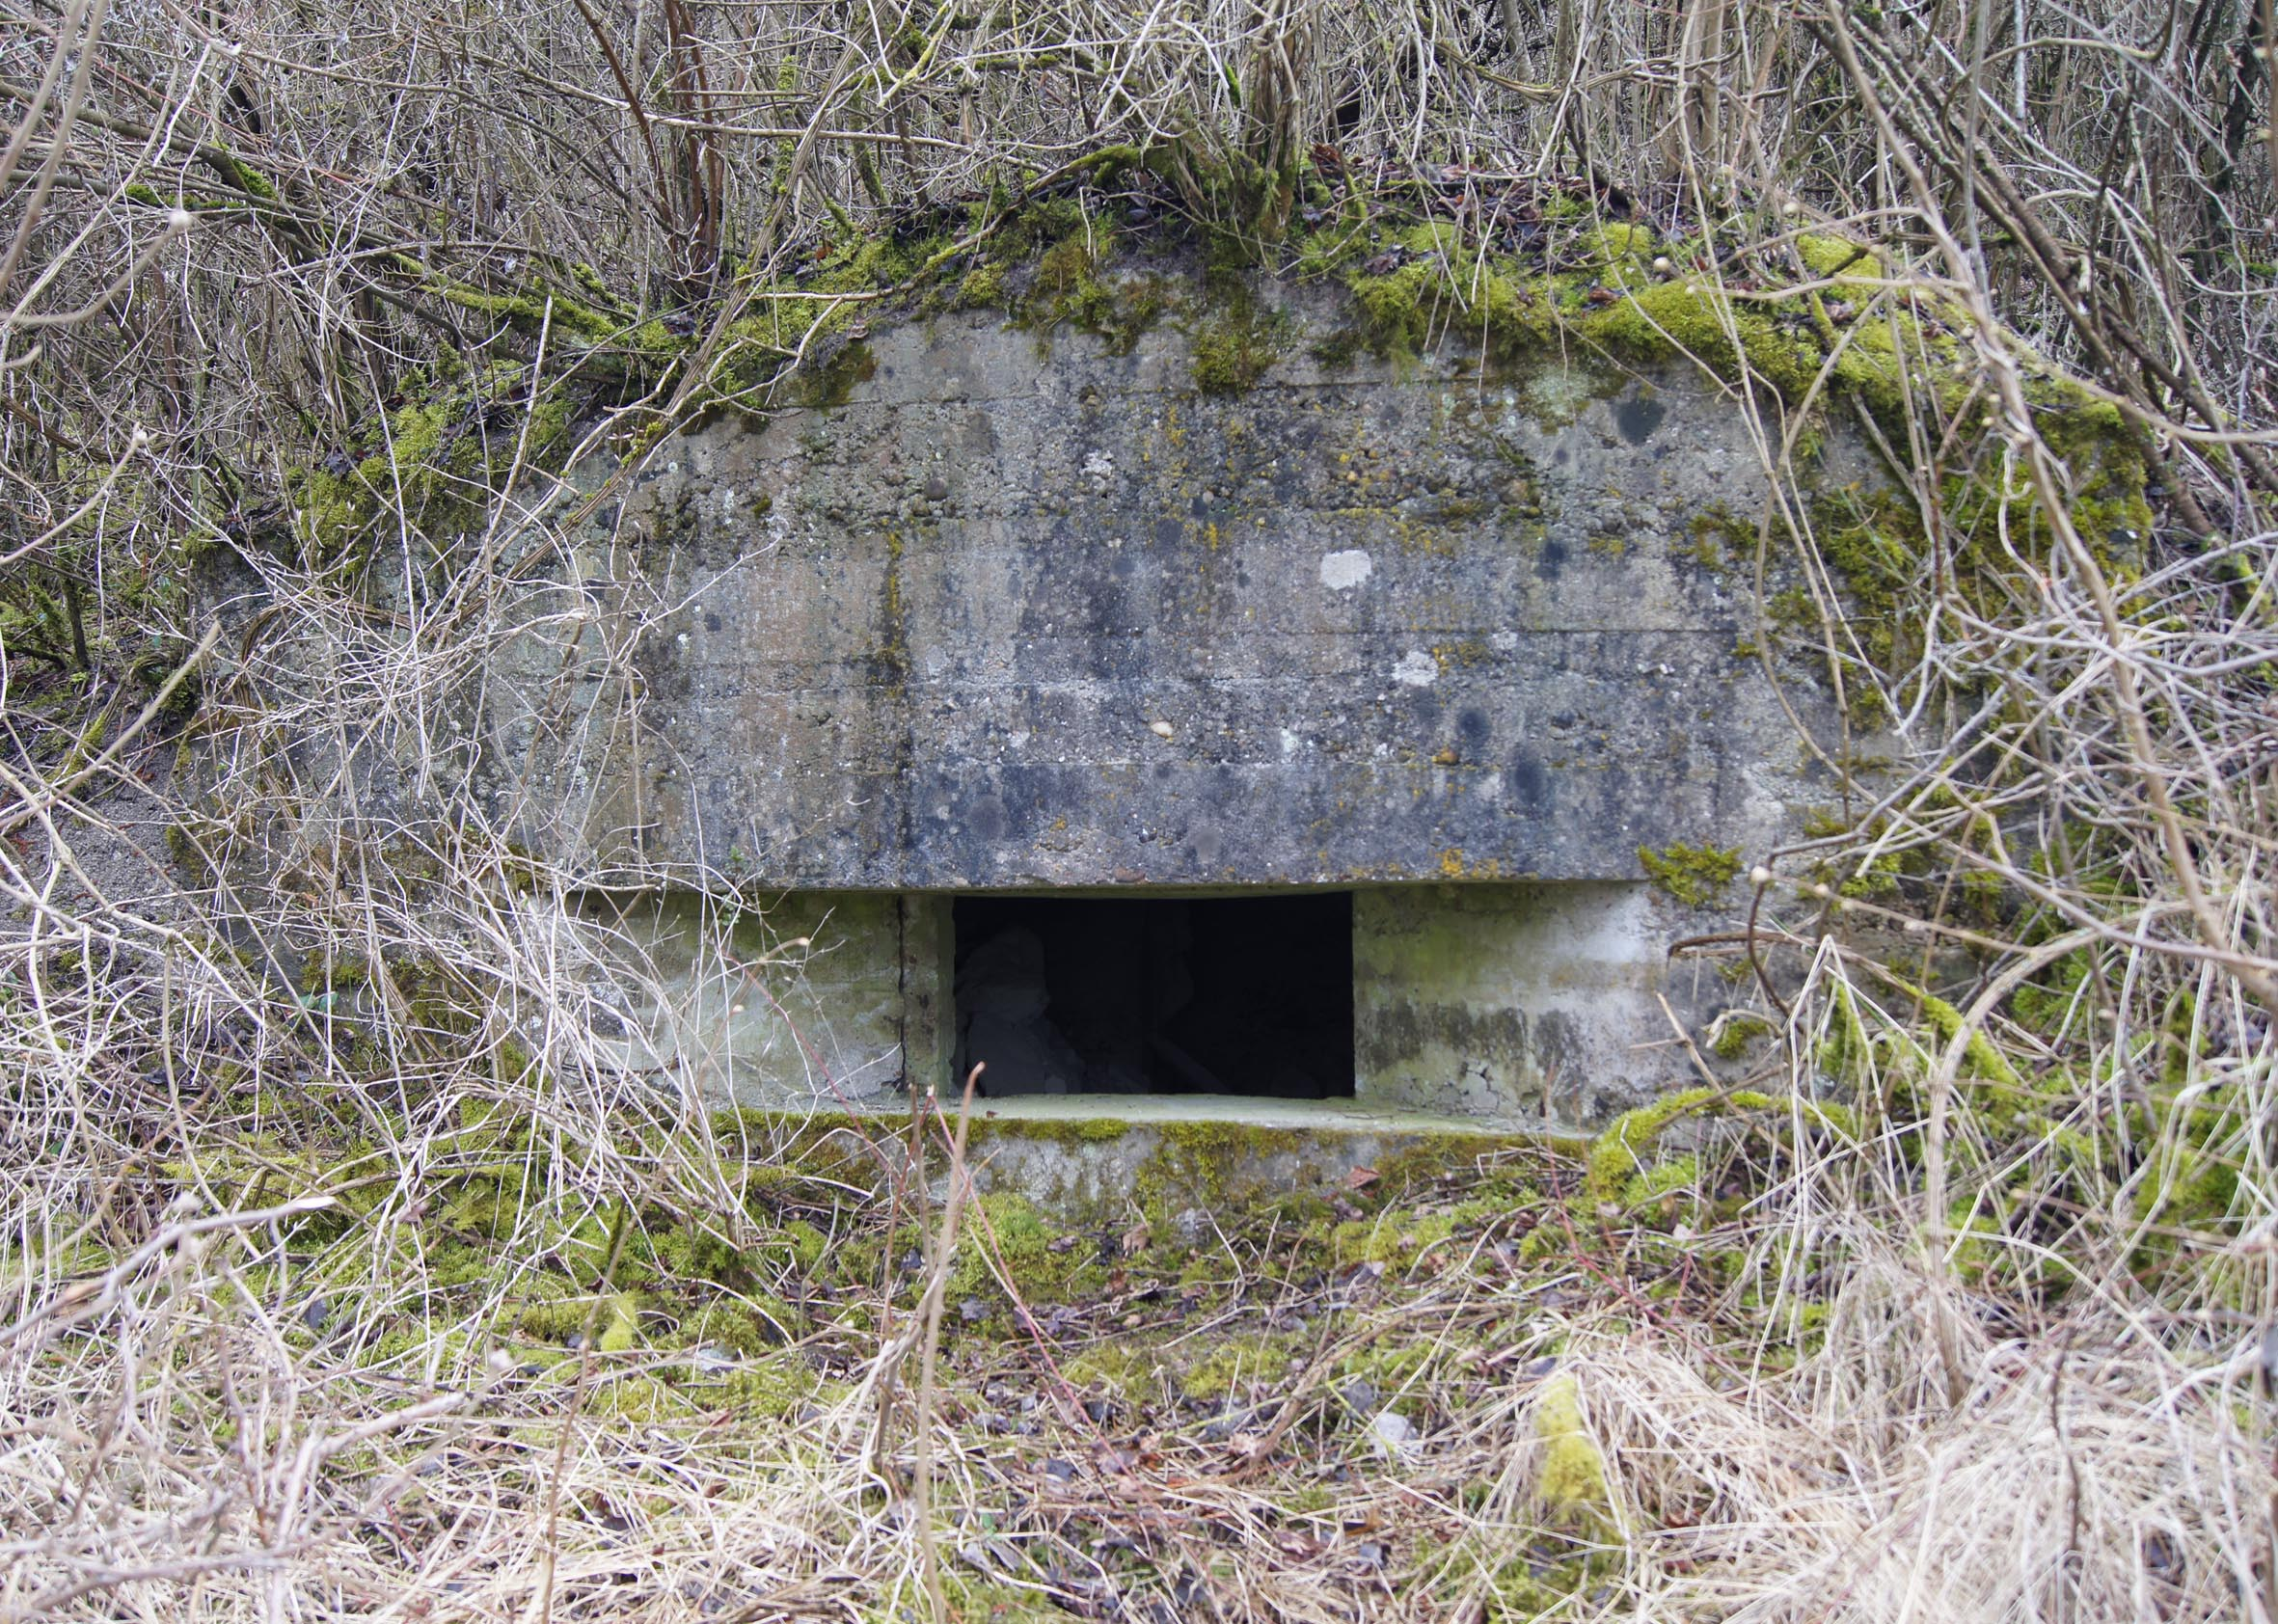 German Observatory or MG-Bunker at the Kanonenberg